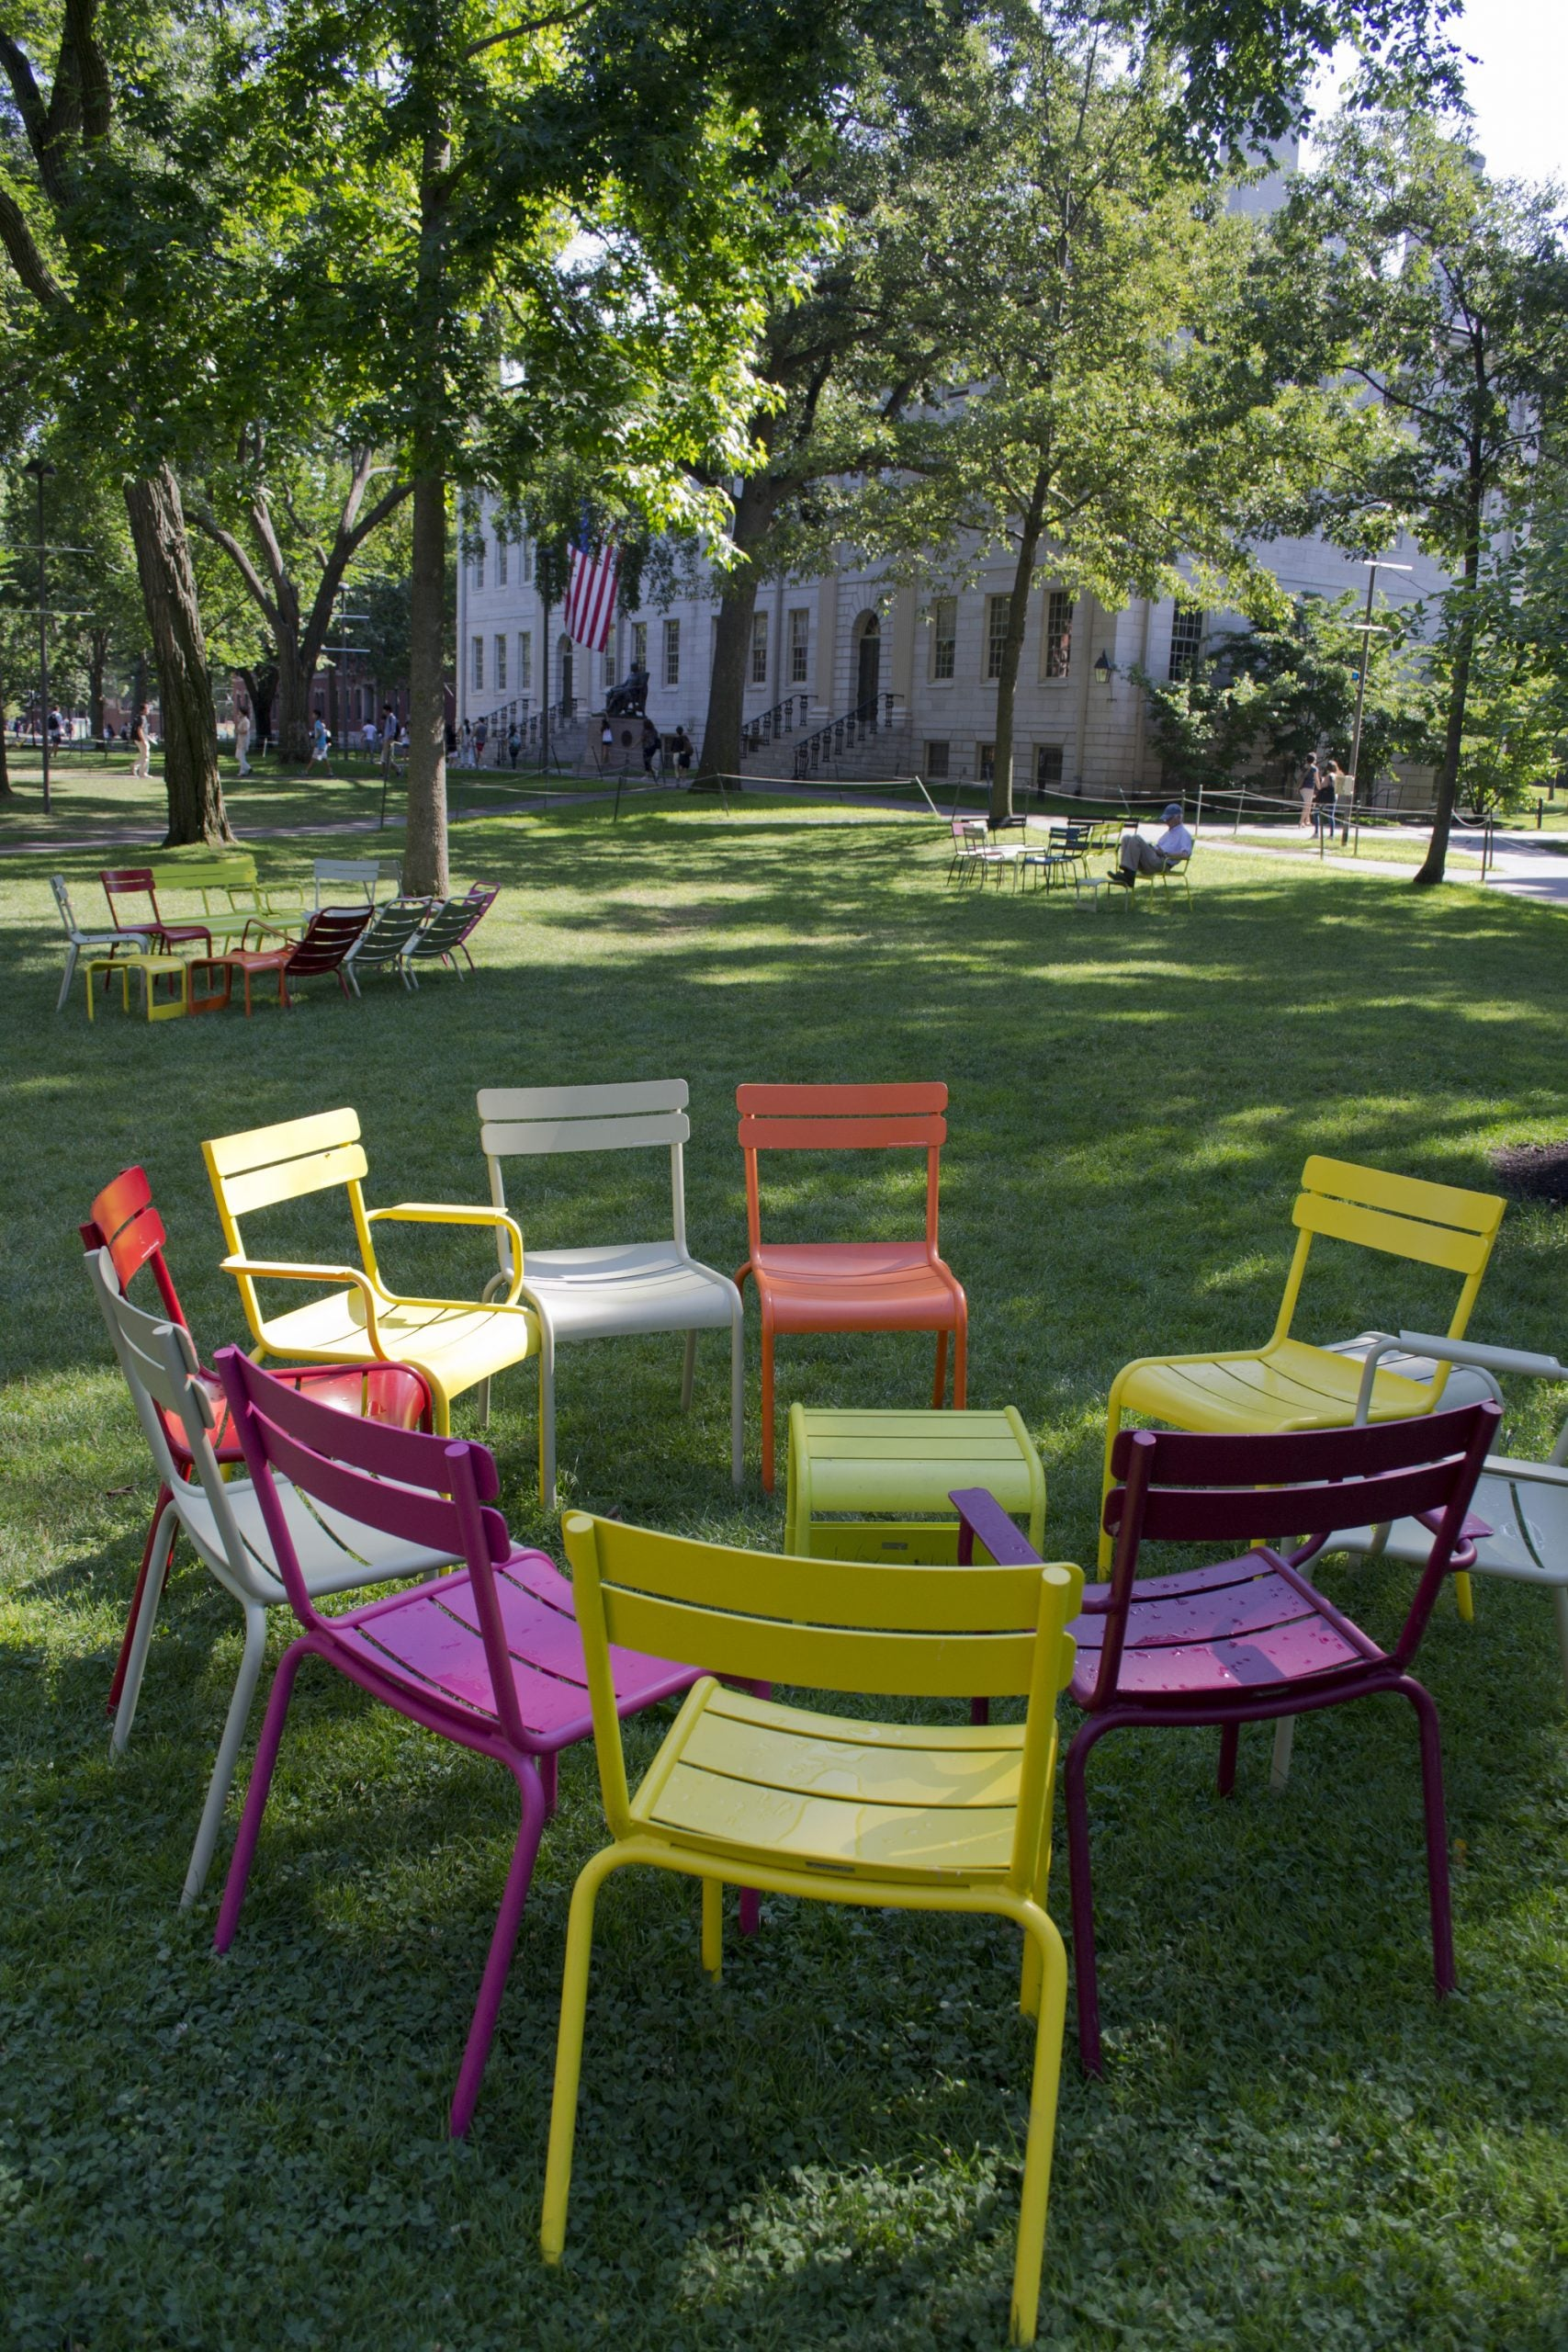 A circle of colorful chairs